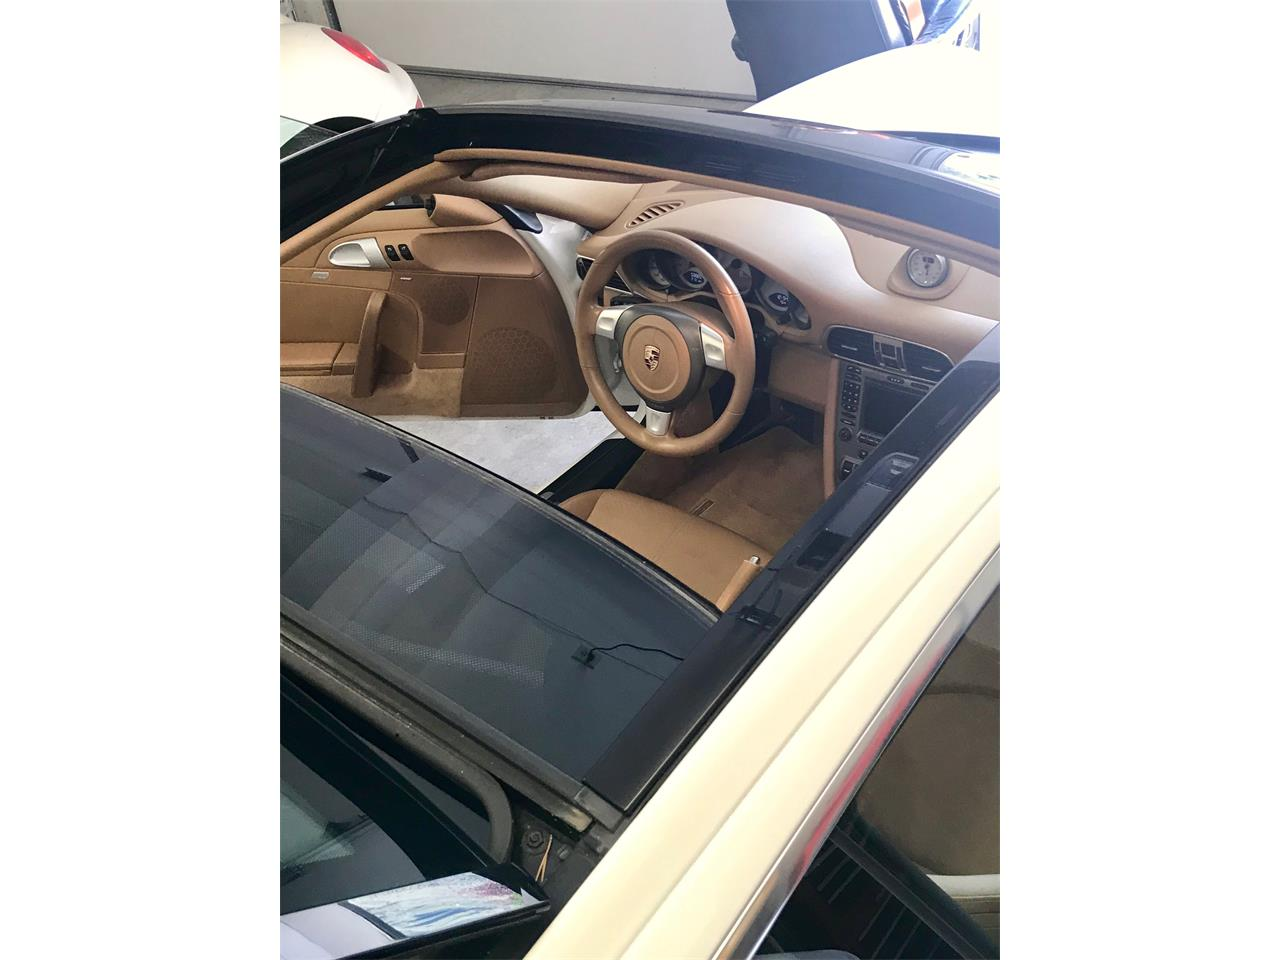 Large Picture of 2007 Porsche 911 located in Wenatchee Washington - $44,475.00 Offered by a Private Seller - QNME